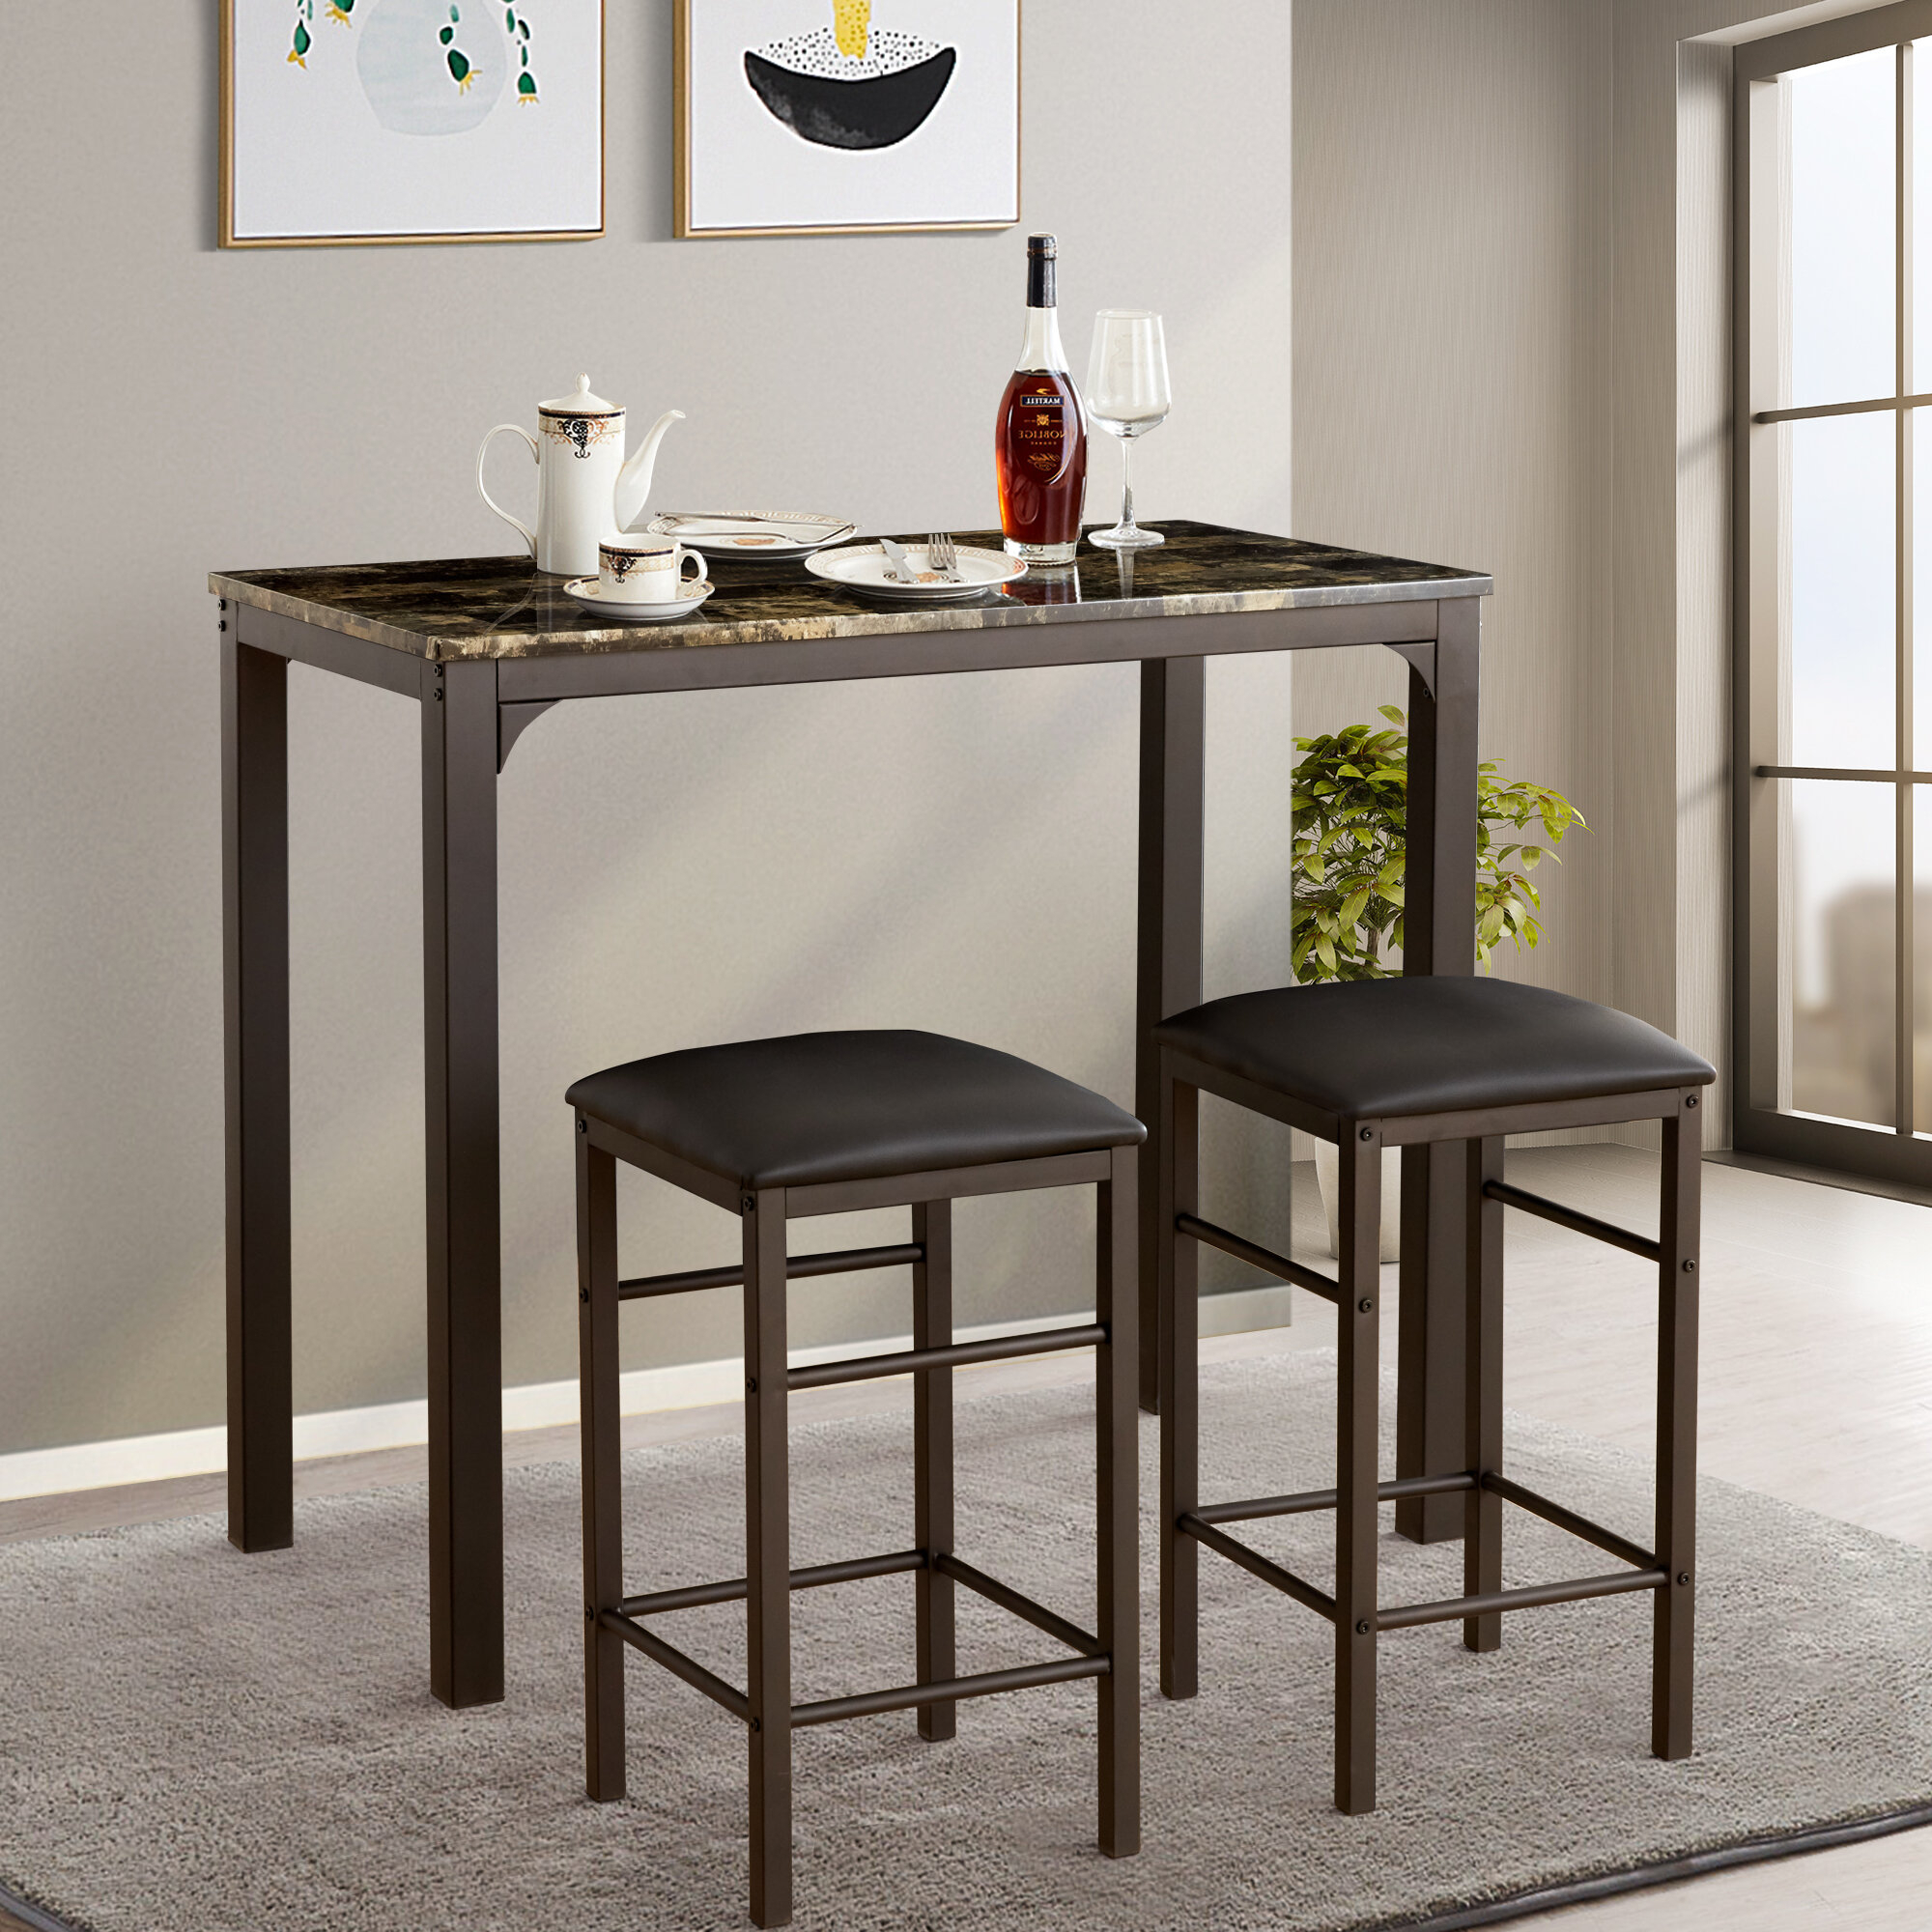 Tappahannock 3 Piece Counter Height Dining Set Regarding Most Up To Date Mizpah 3 Piece Counter Height Dining Sets (Image 19 of 20)